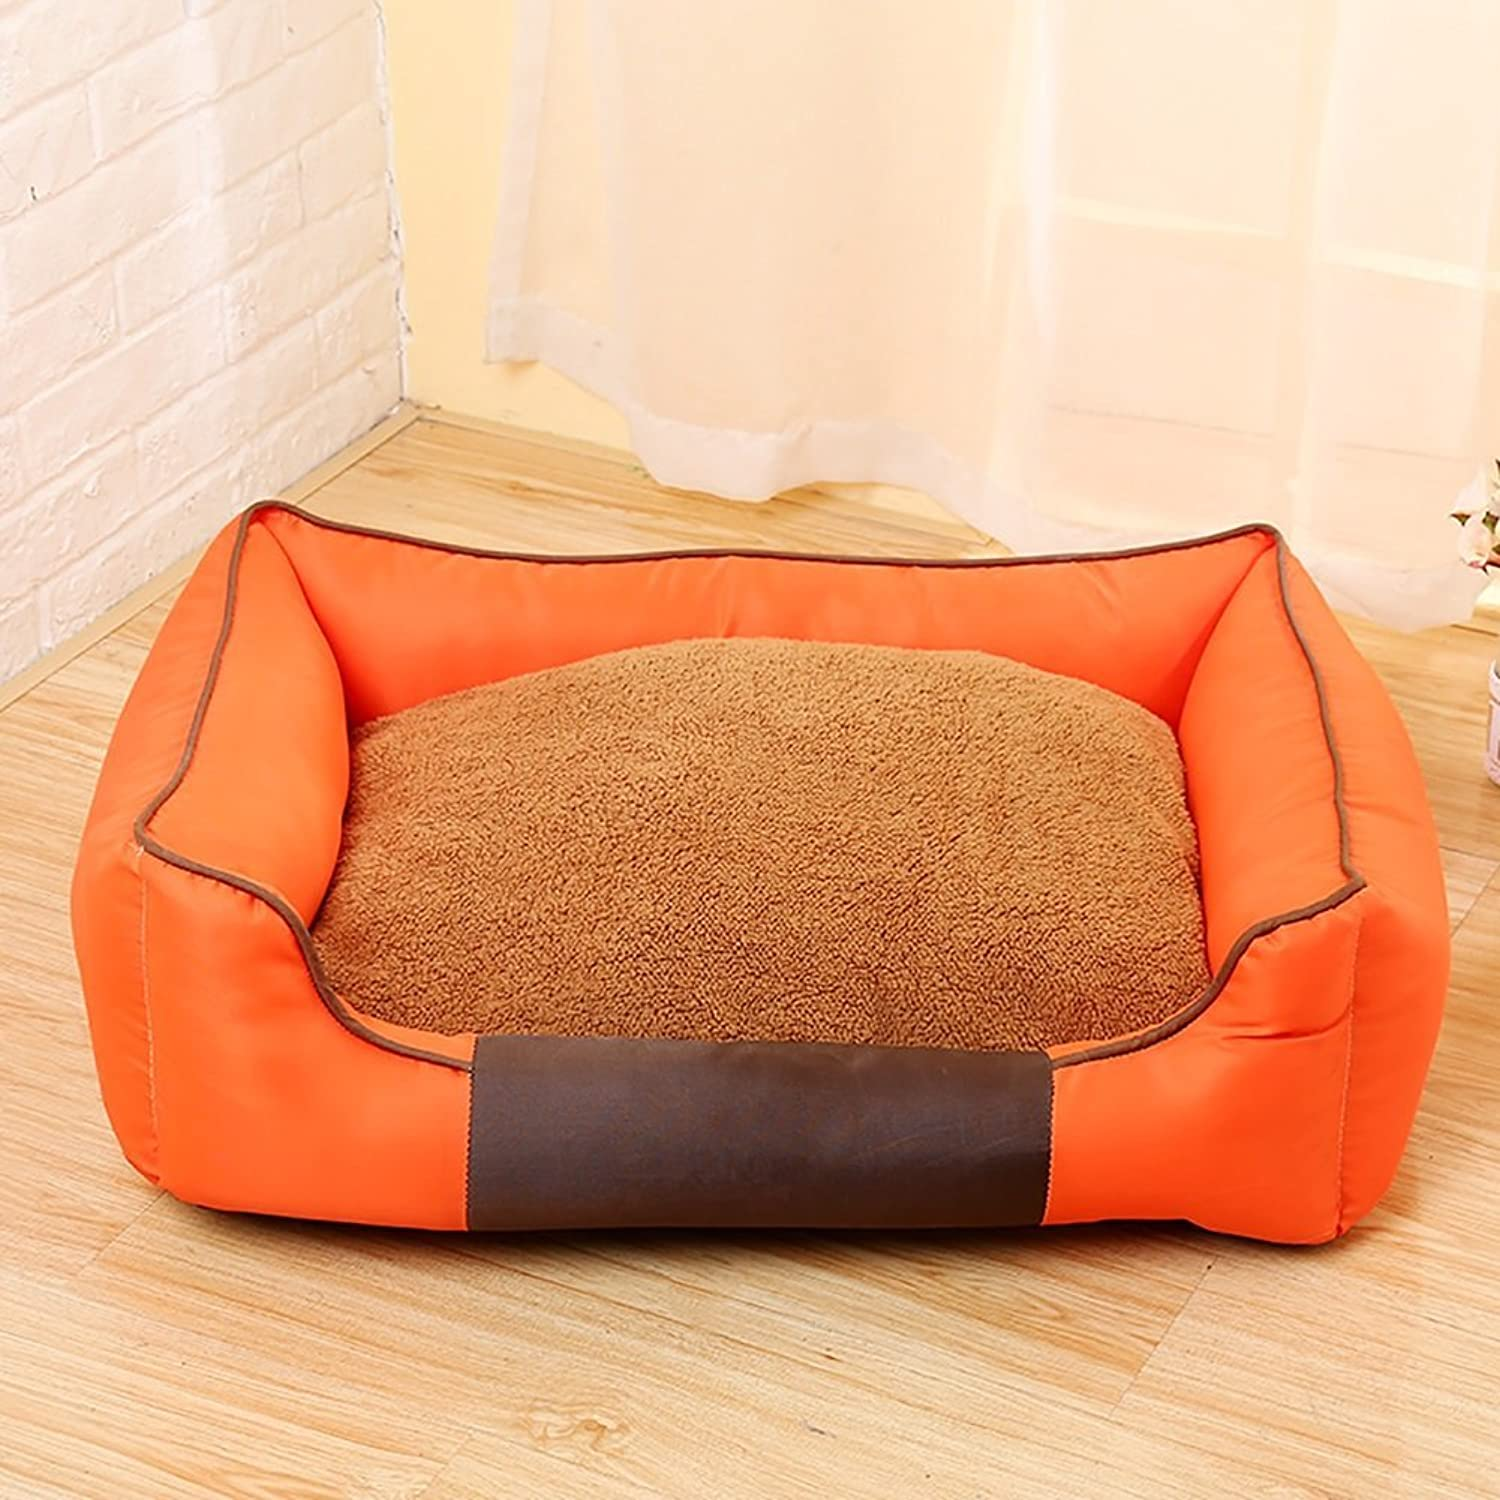 LongYu Pet Nest,Thickening Washable Cushion Pet Dog Cat Bed Sofa Nest Soft Cotton Dog Warm Kennel Bed House Pet Mats Cushion 3 color & 3 Size (color   orange, Size   S)